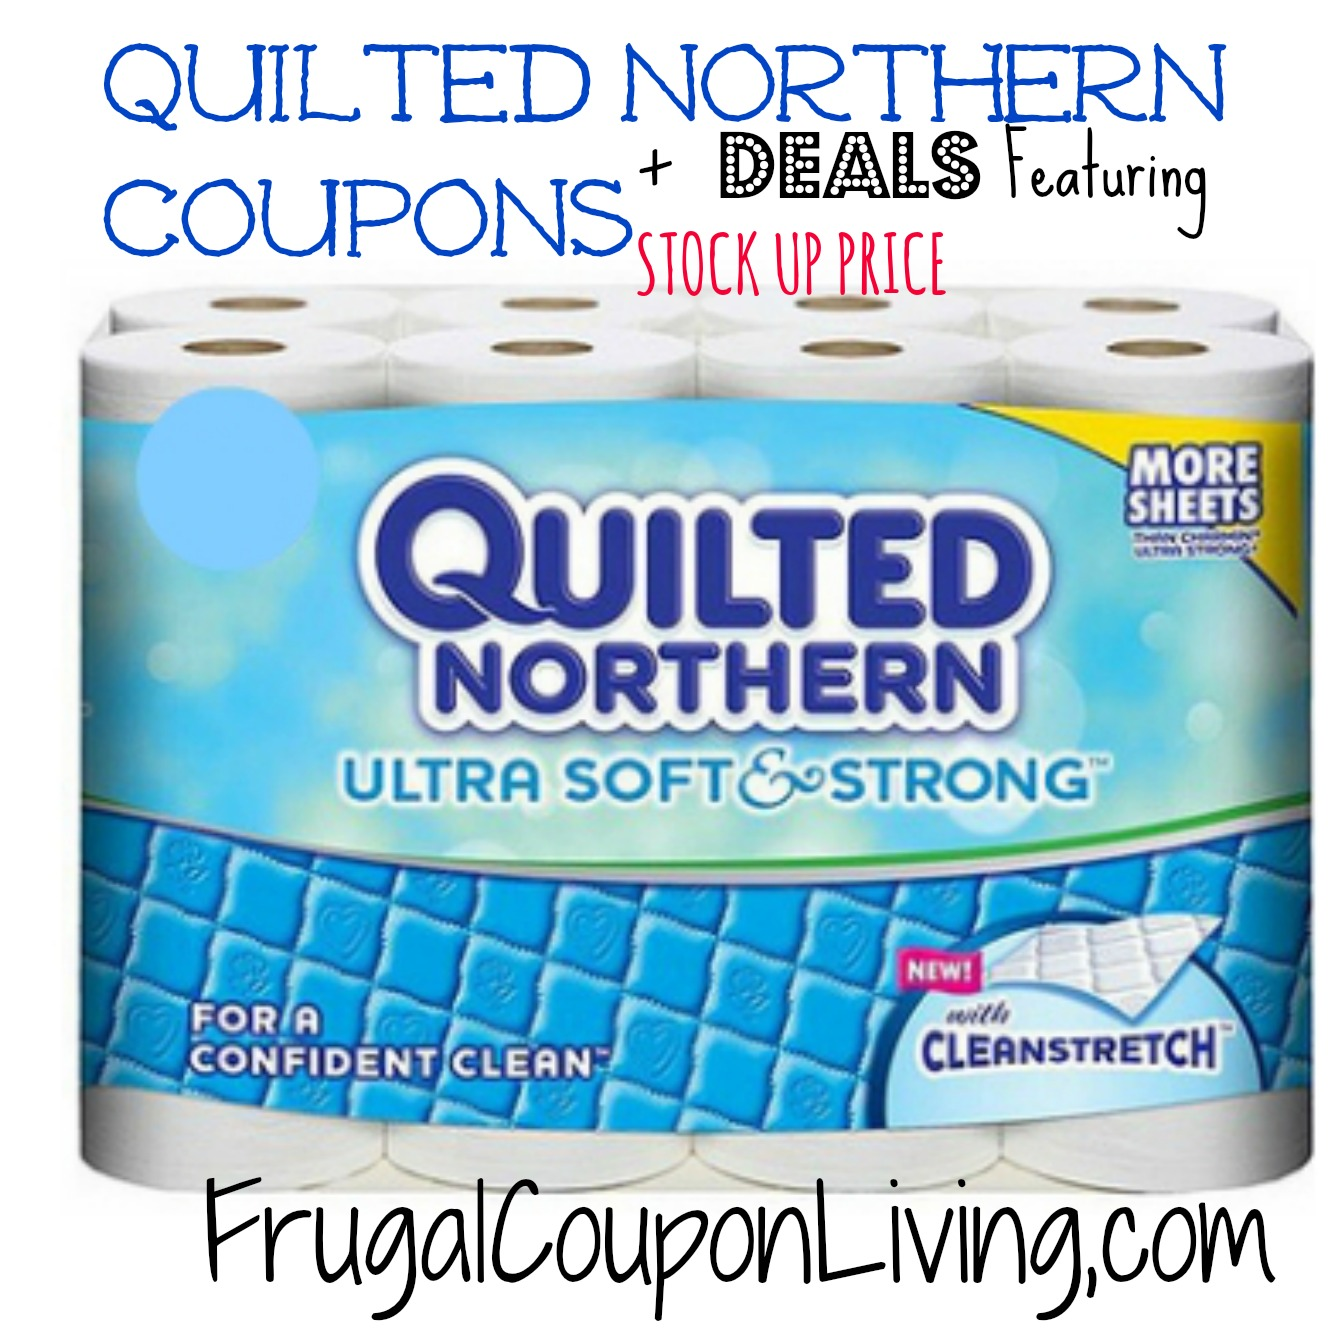 Quilted Northern Printable Coupons + Deal $5.99 or $0.38 per ... : quilted northern printable coupons - Adamdwight.com